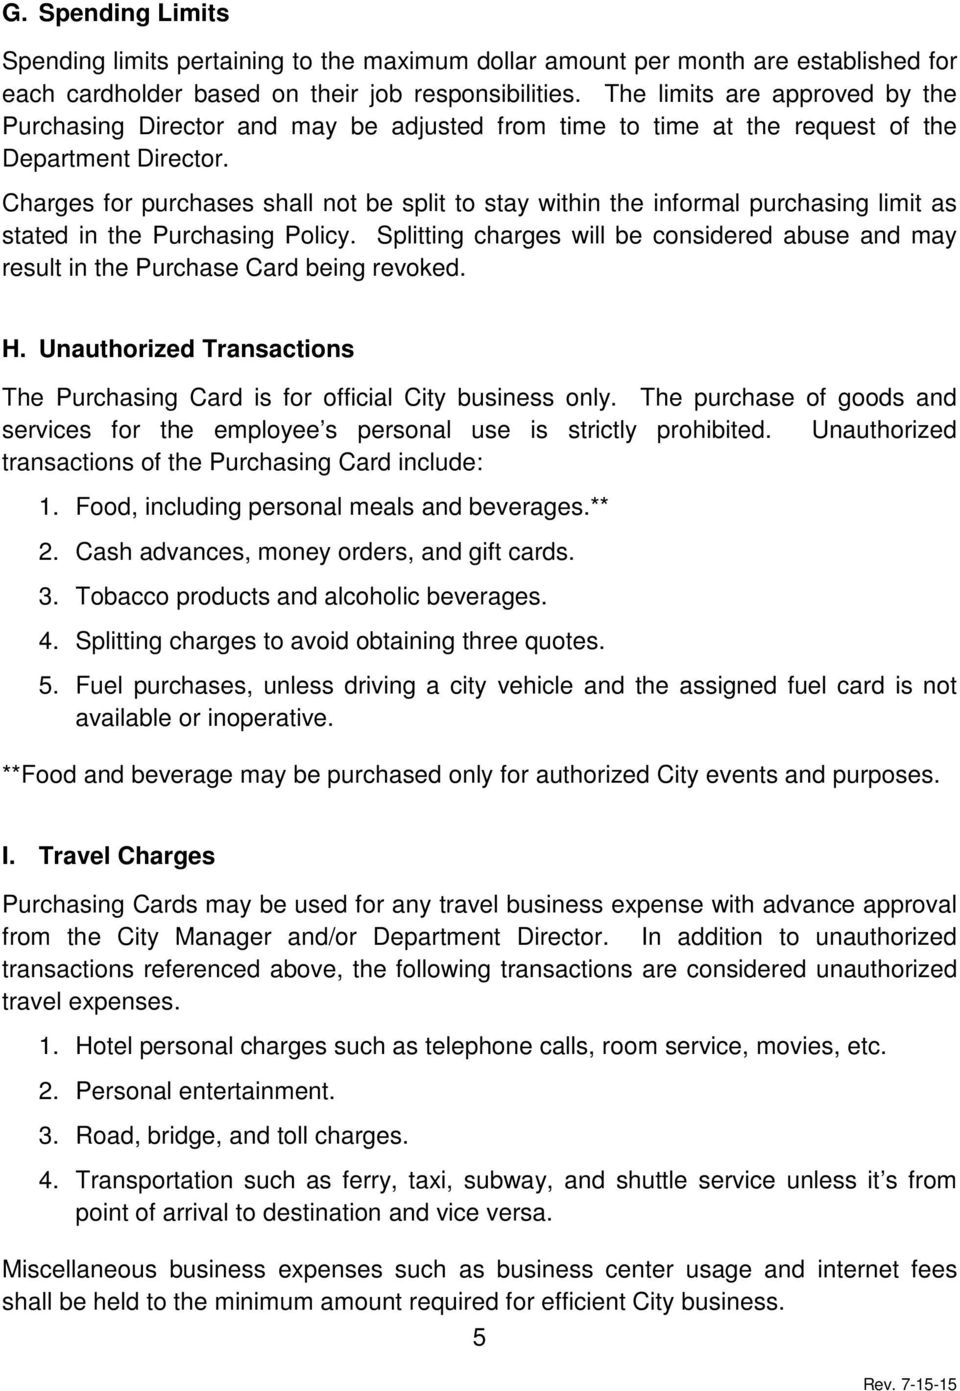 Charges for purchases shall not be split to stay within the informal purchasing limit as stated in the Purchasing Policy.